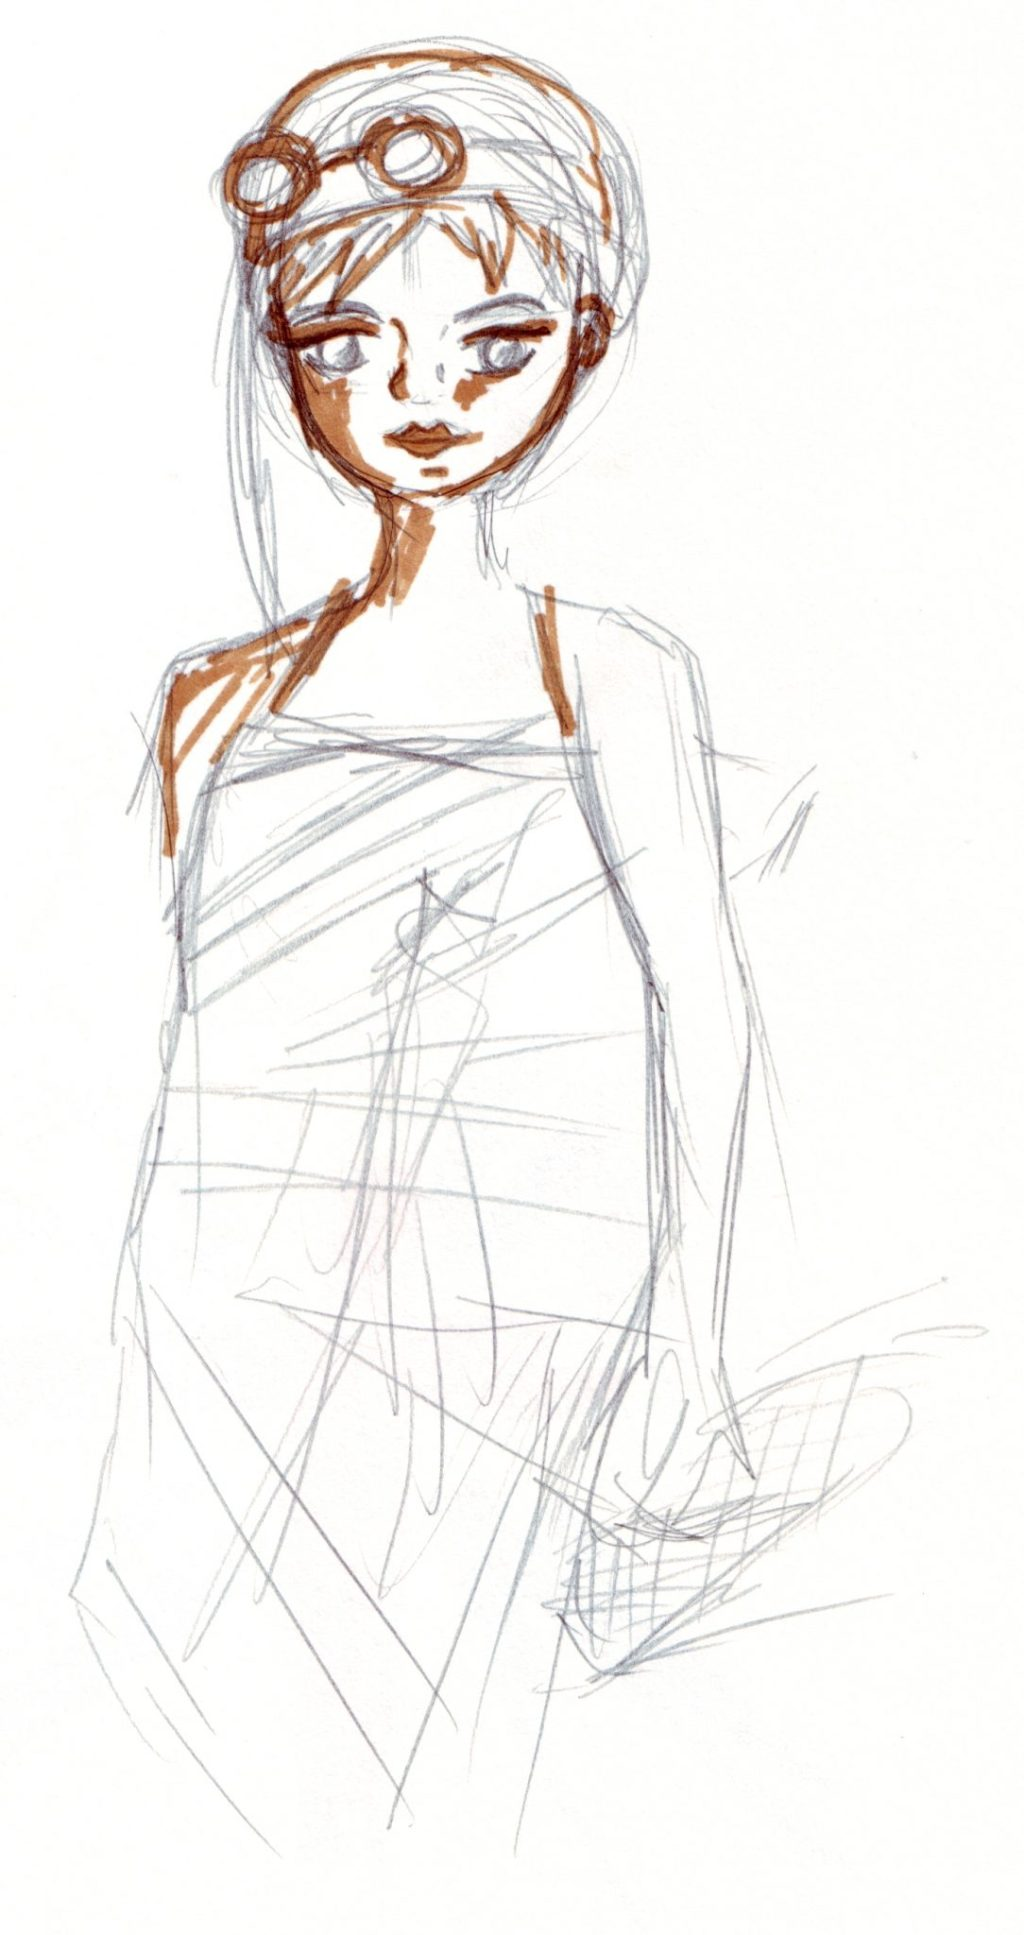 A sketch of a woman draped in fabric wearing a helmet and goggles.